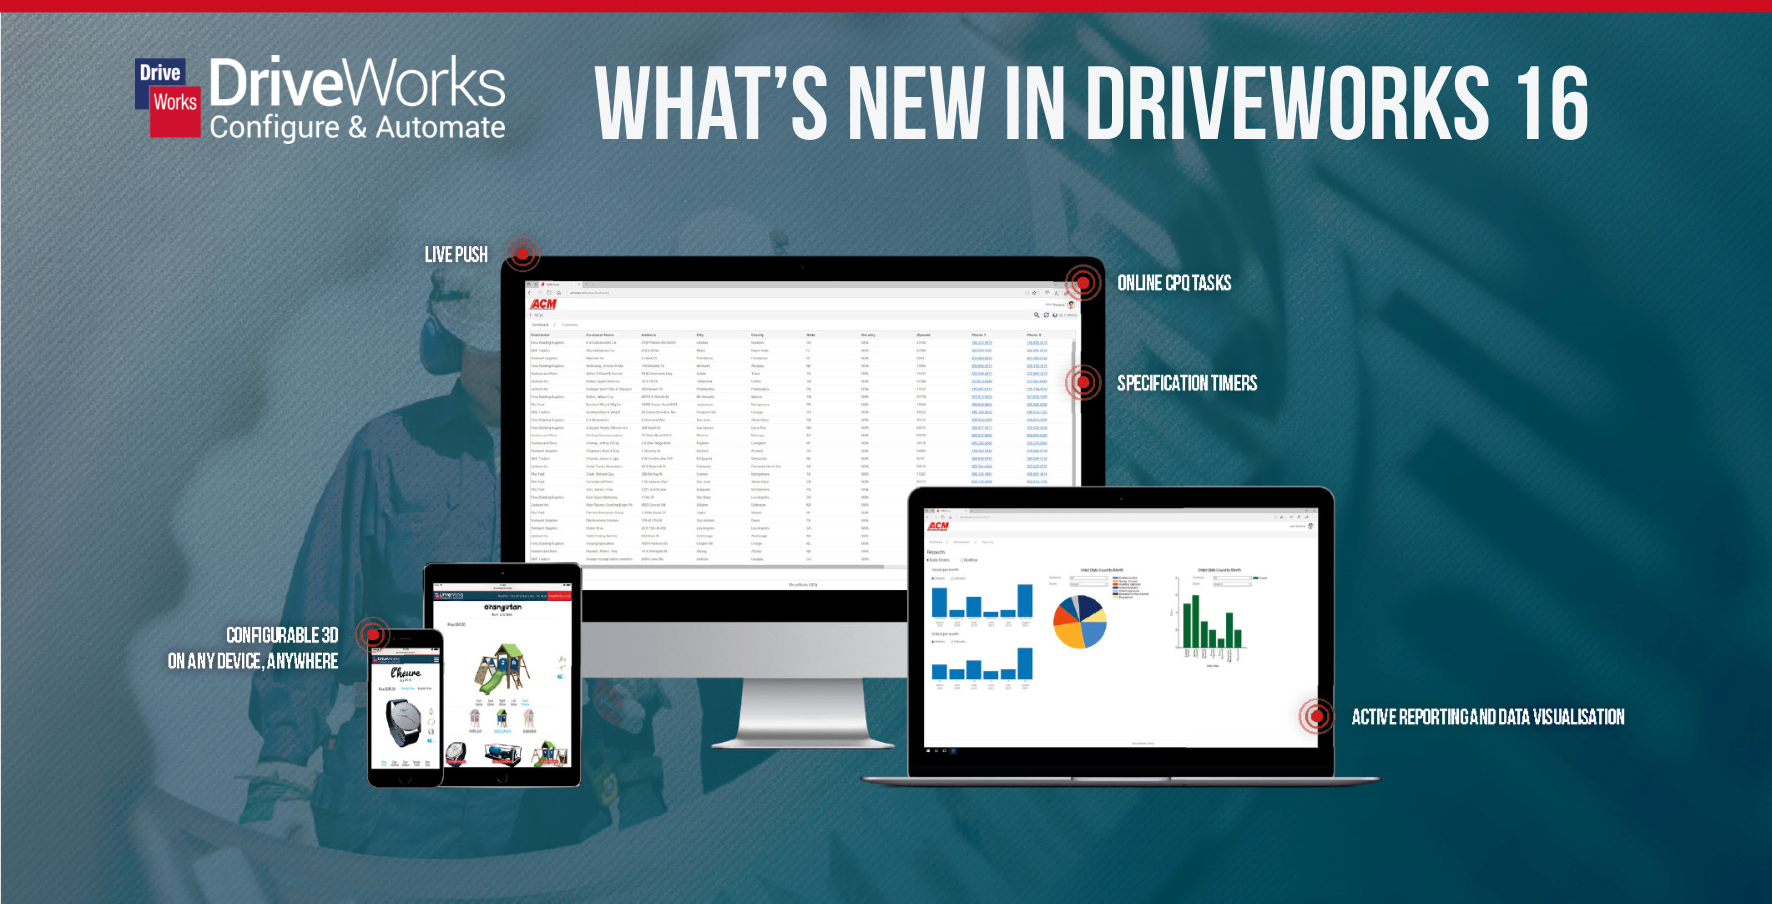 What'sNewinDriveWorks16